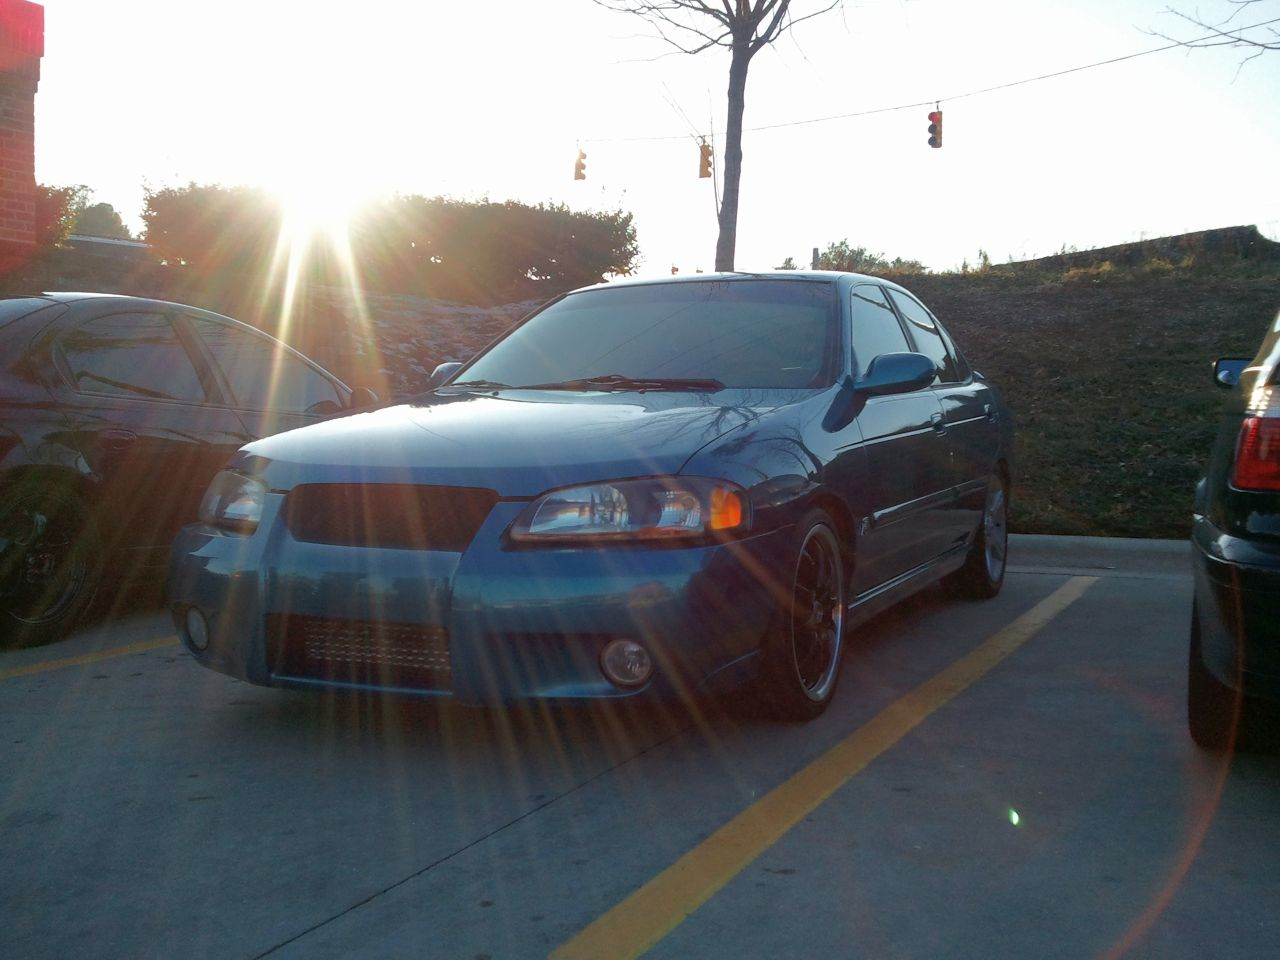 hight resolution of observe it would appear to be a 2002 2003 nissan sentra se r specv with some crappy mismatched wheels bad paint and a horse ton of miles on it